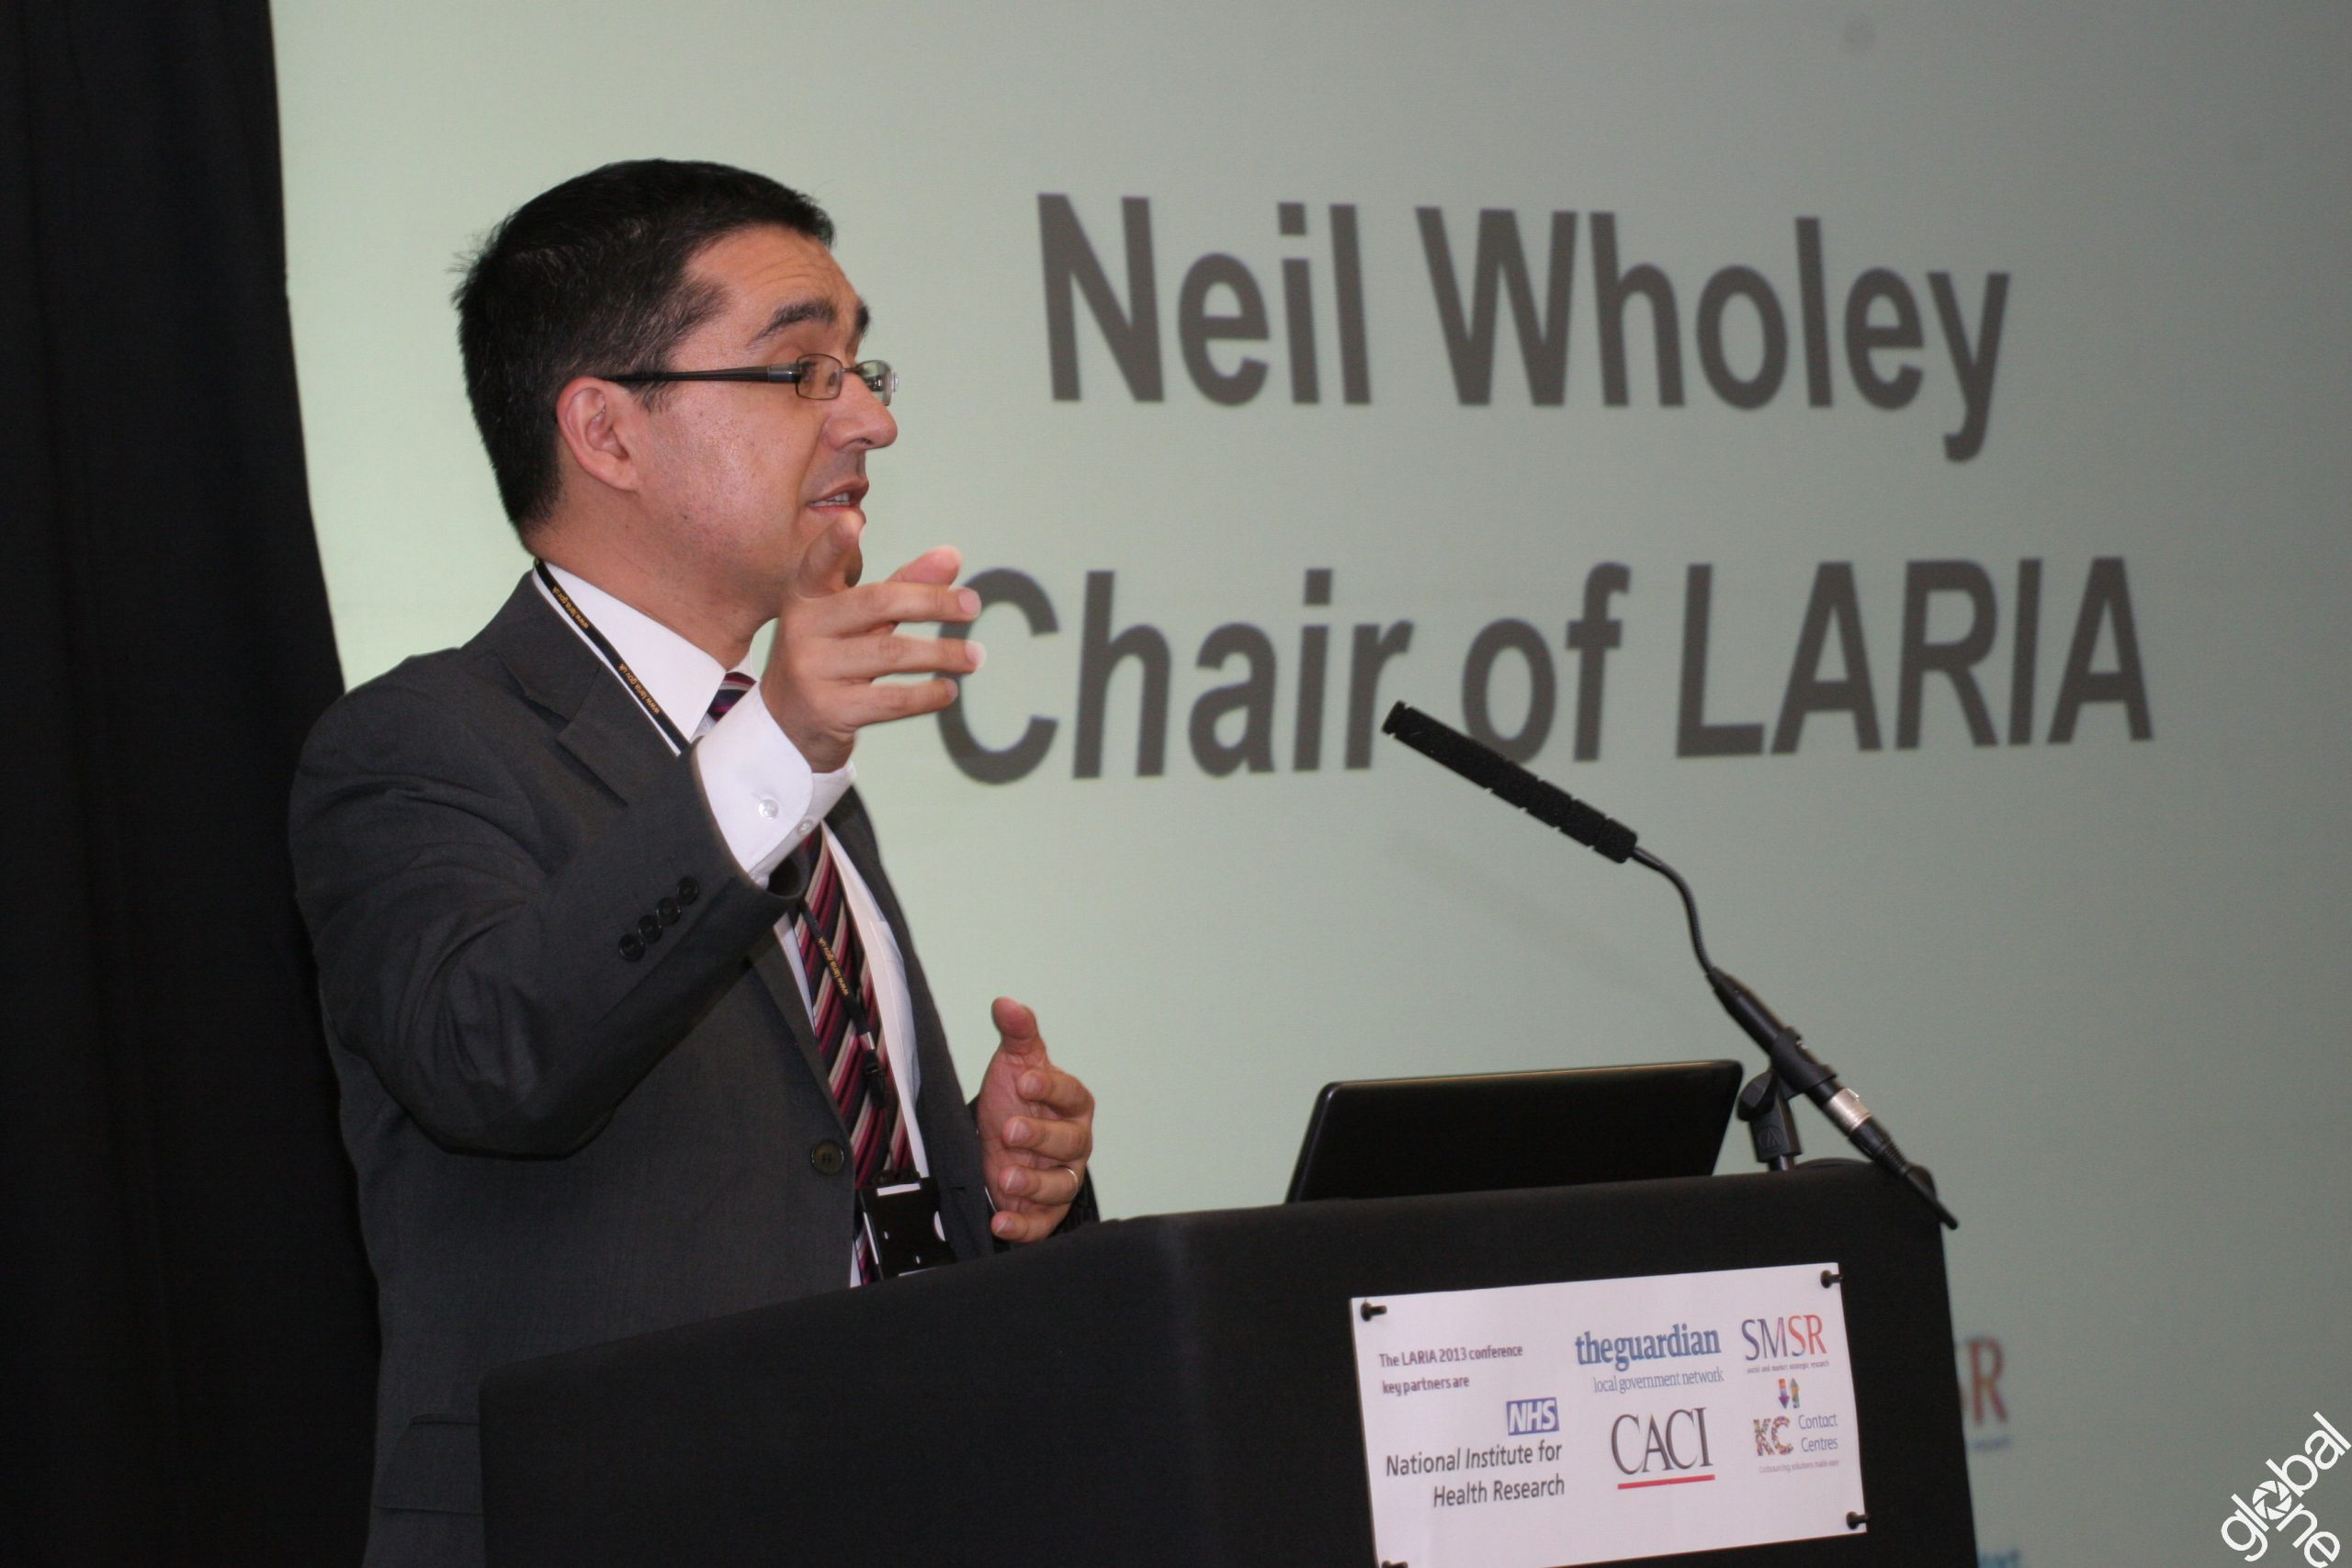 Neil Wholey, Chair of LARIA